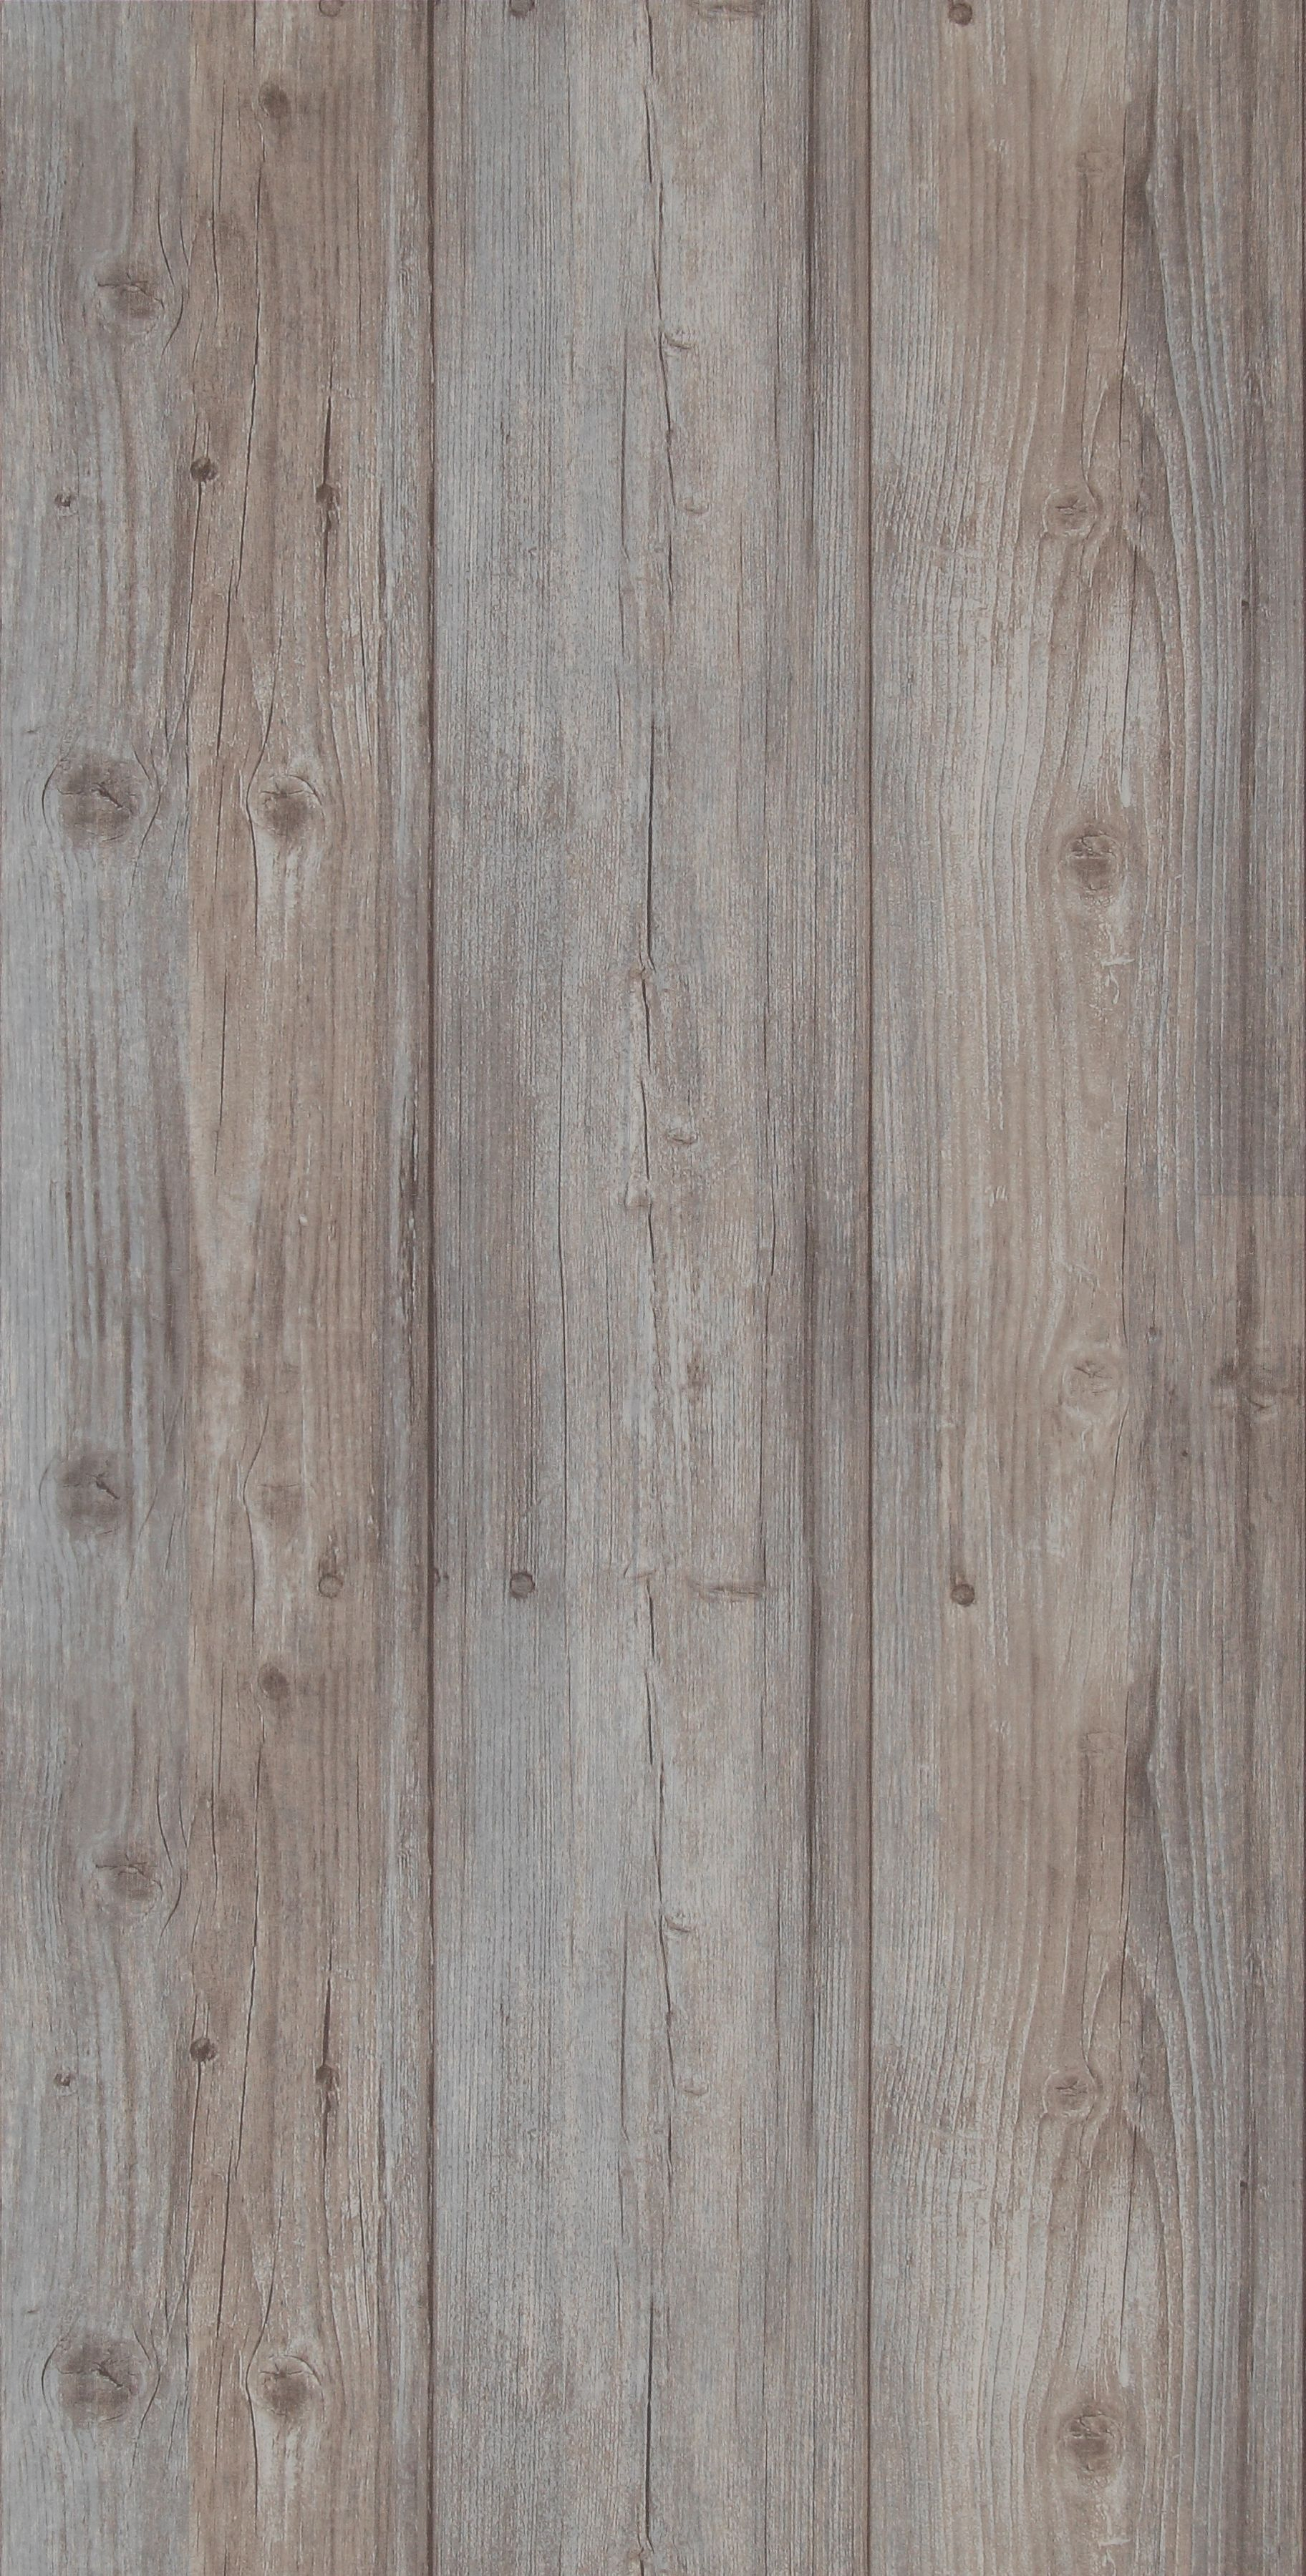 Behang hout Wallpaper wood collection More Than Elements